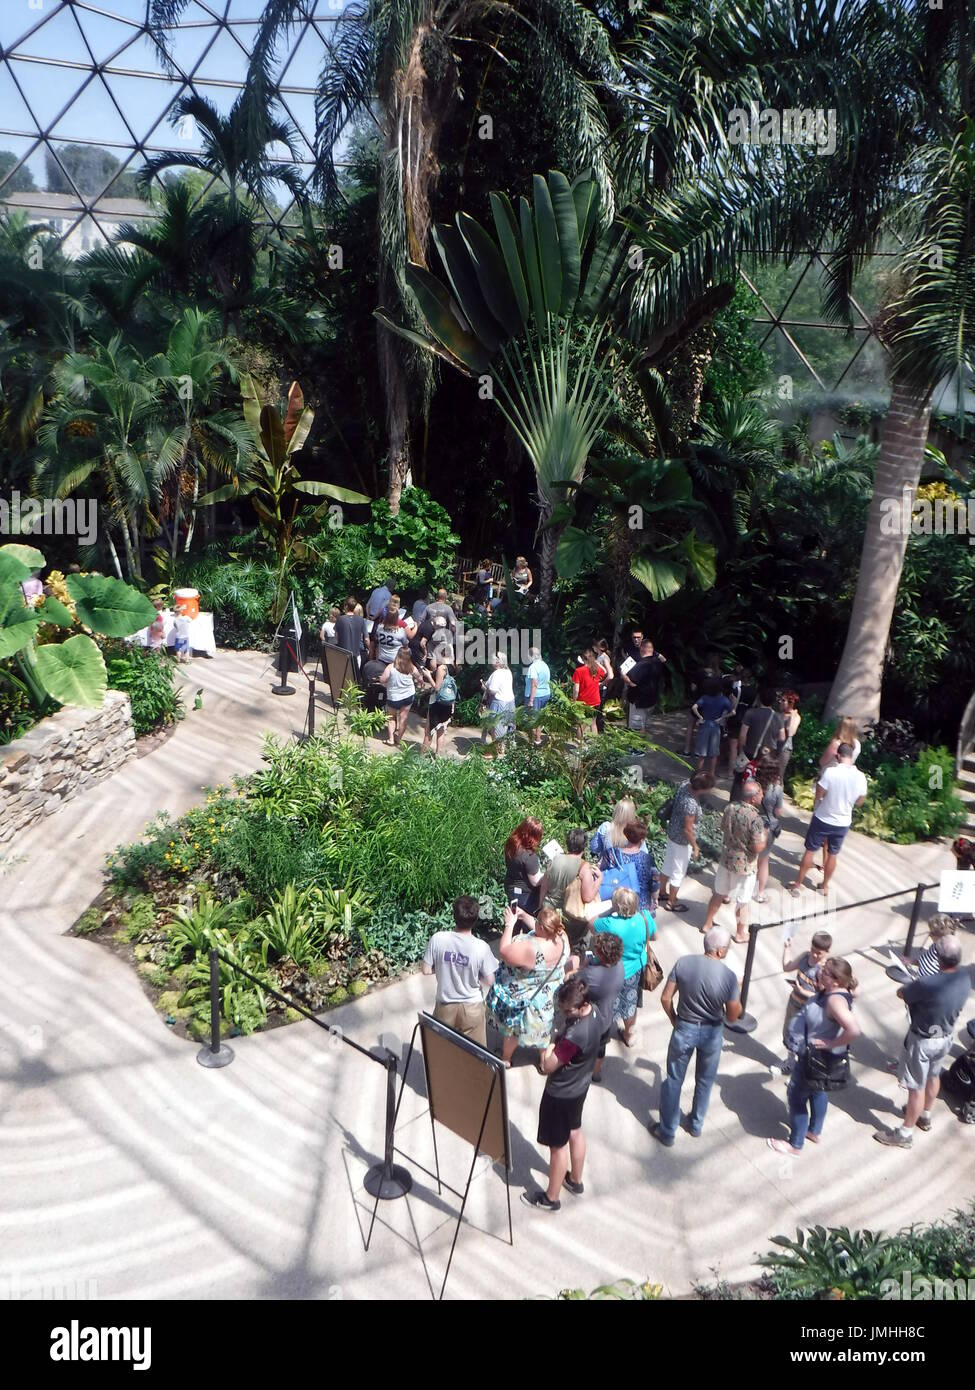 people line up in the greater des moines botanical garden to view the titan arum plant - Greater Des Moines Botanical Garden